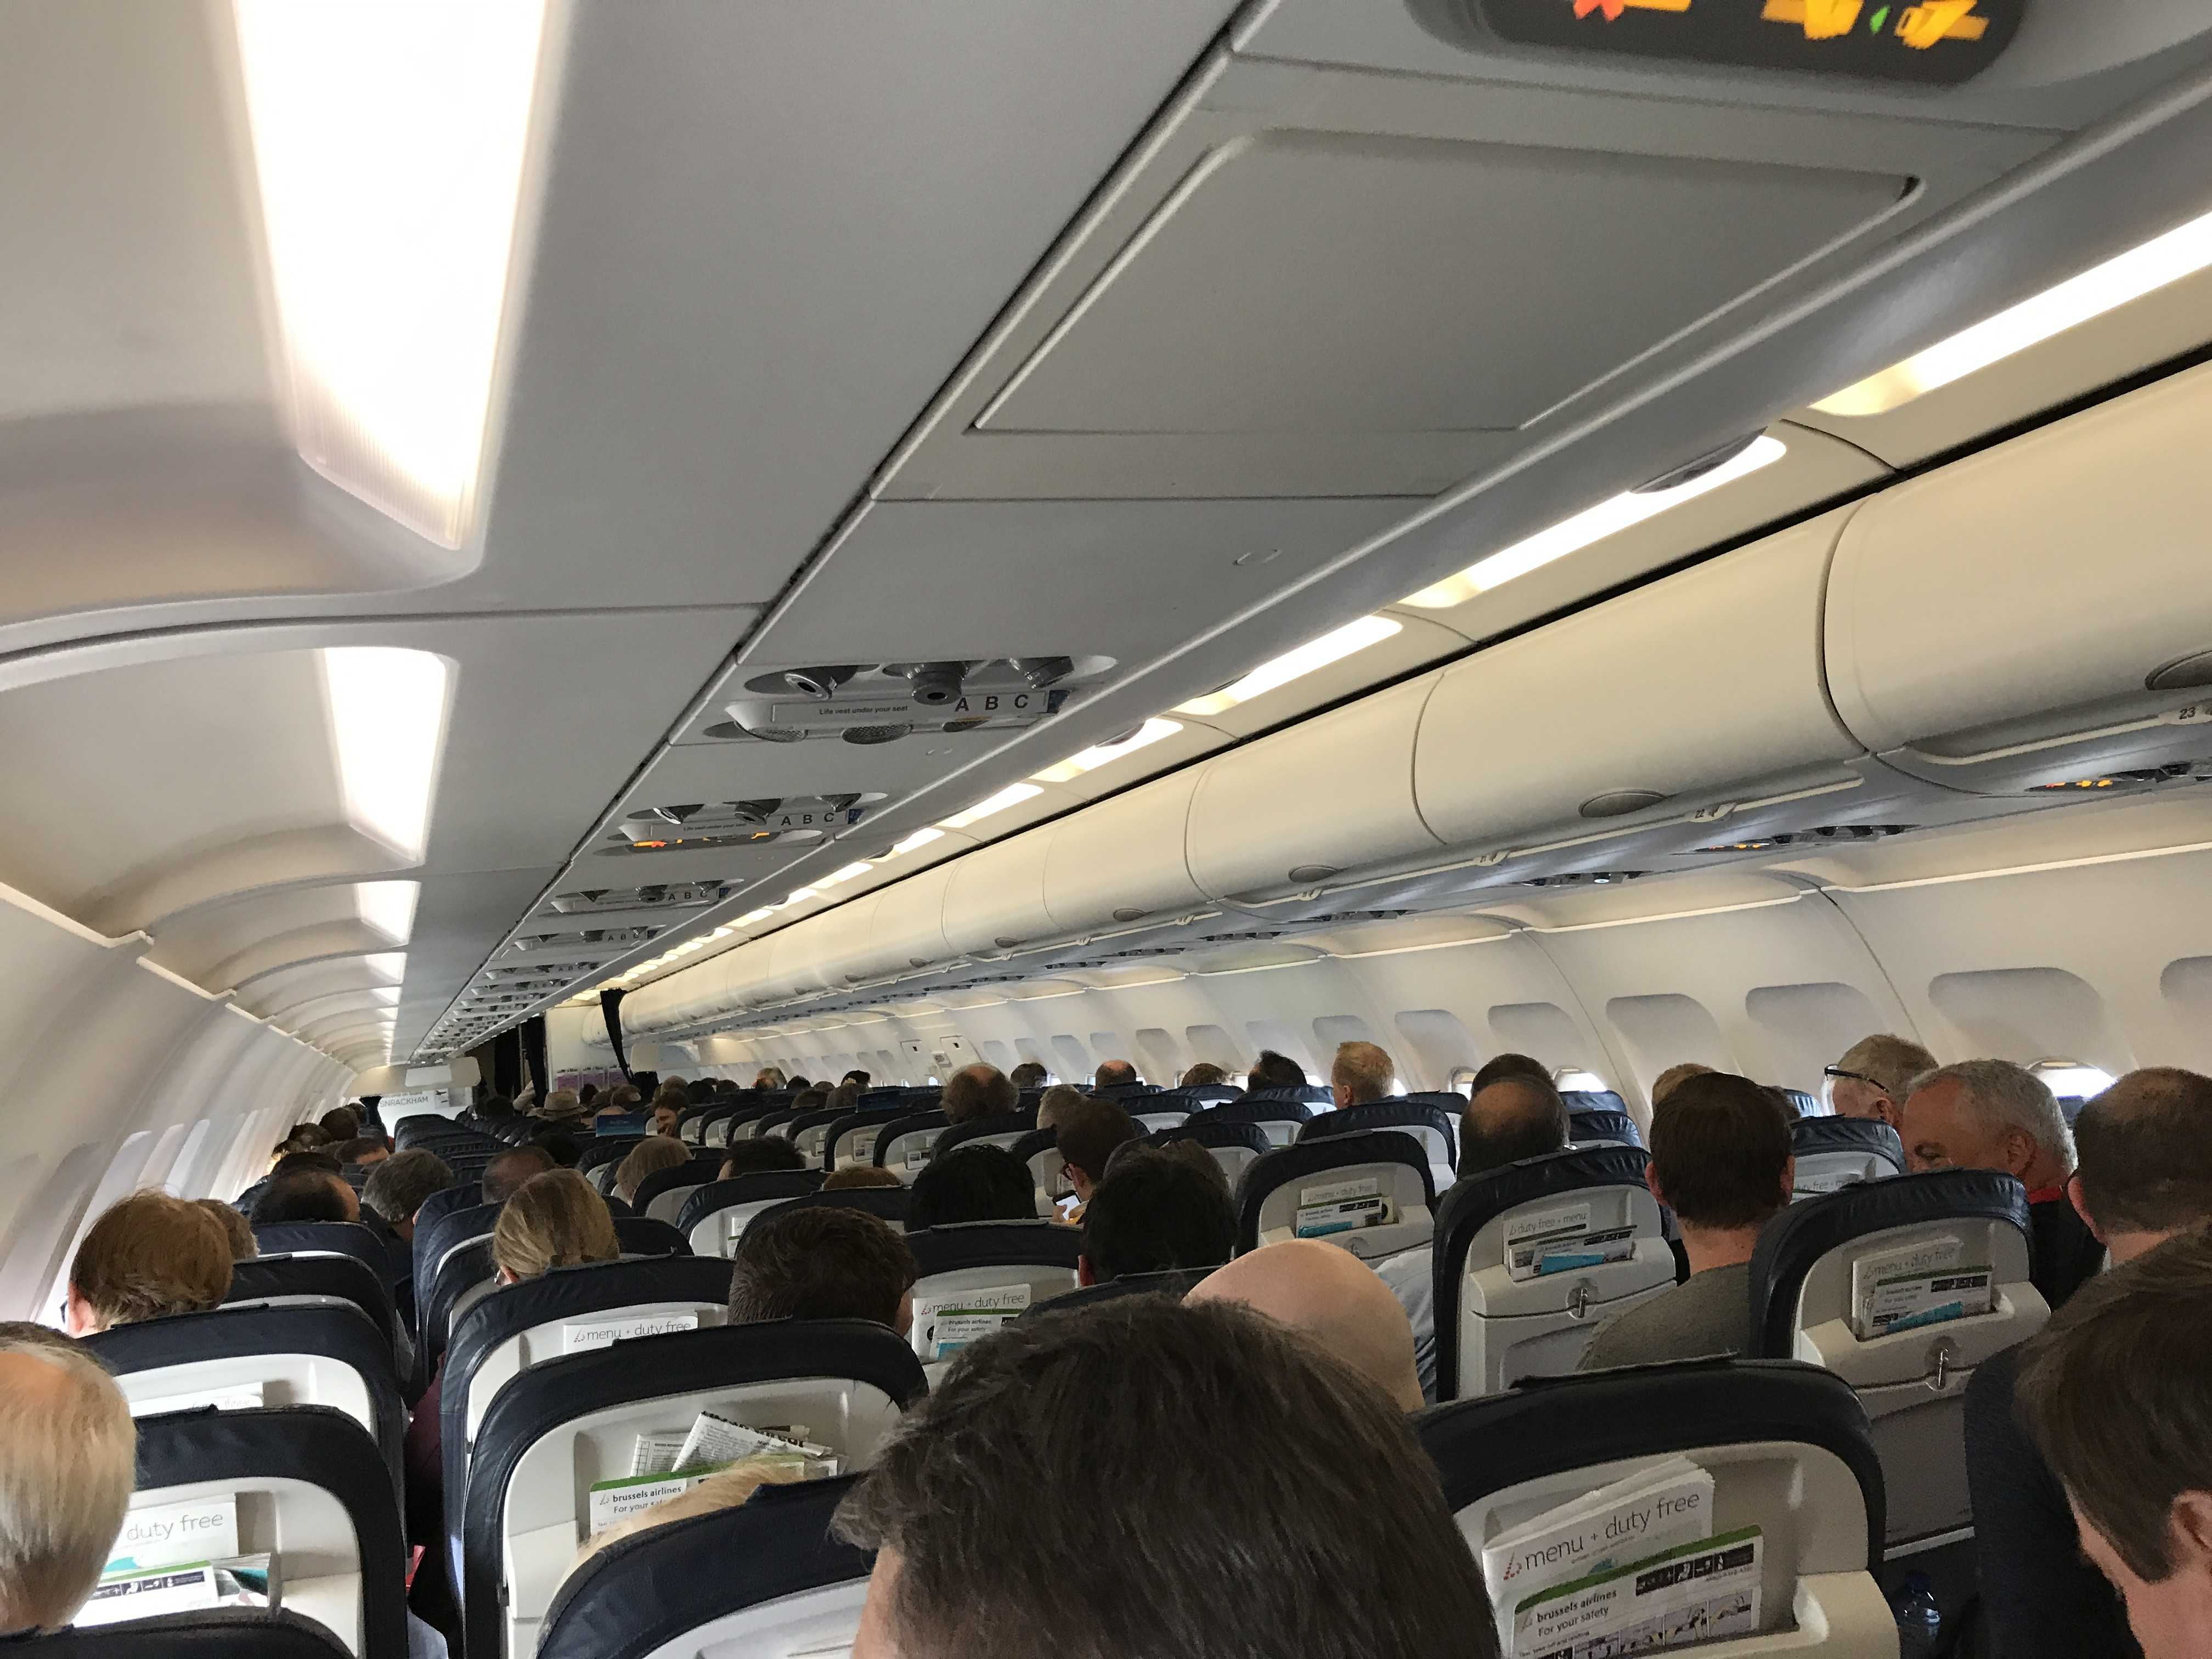 Brussels Airlines A320 interior